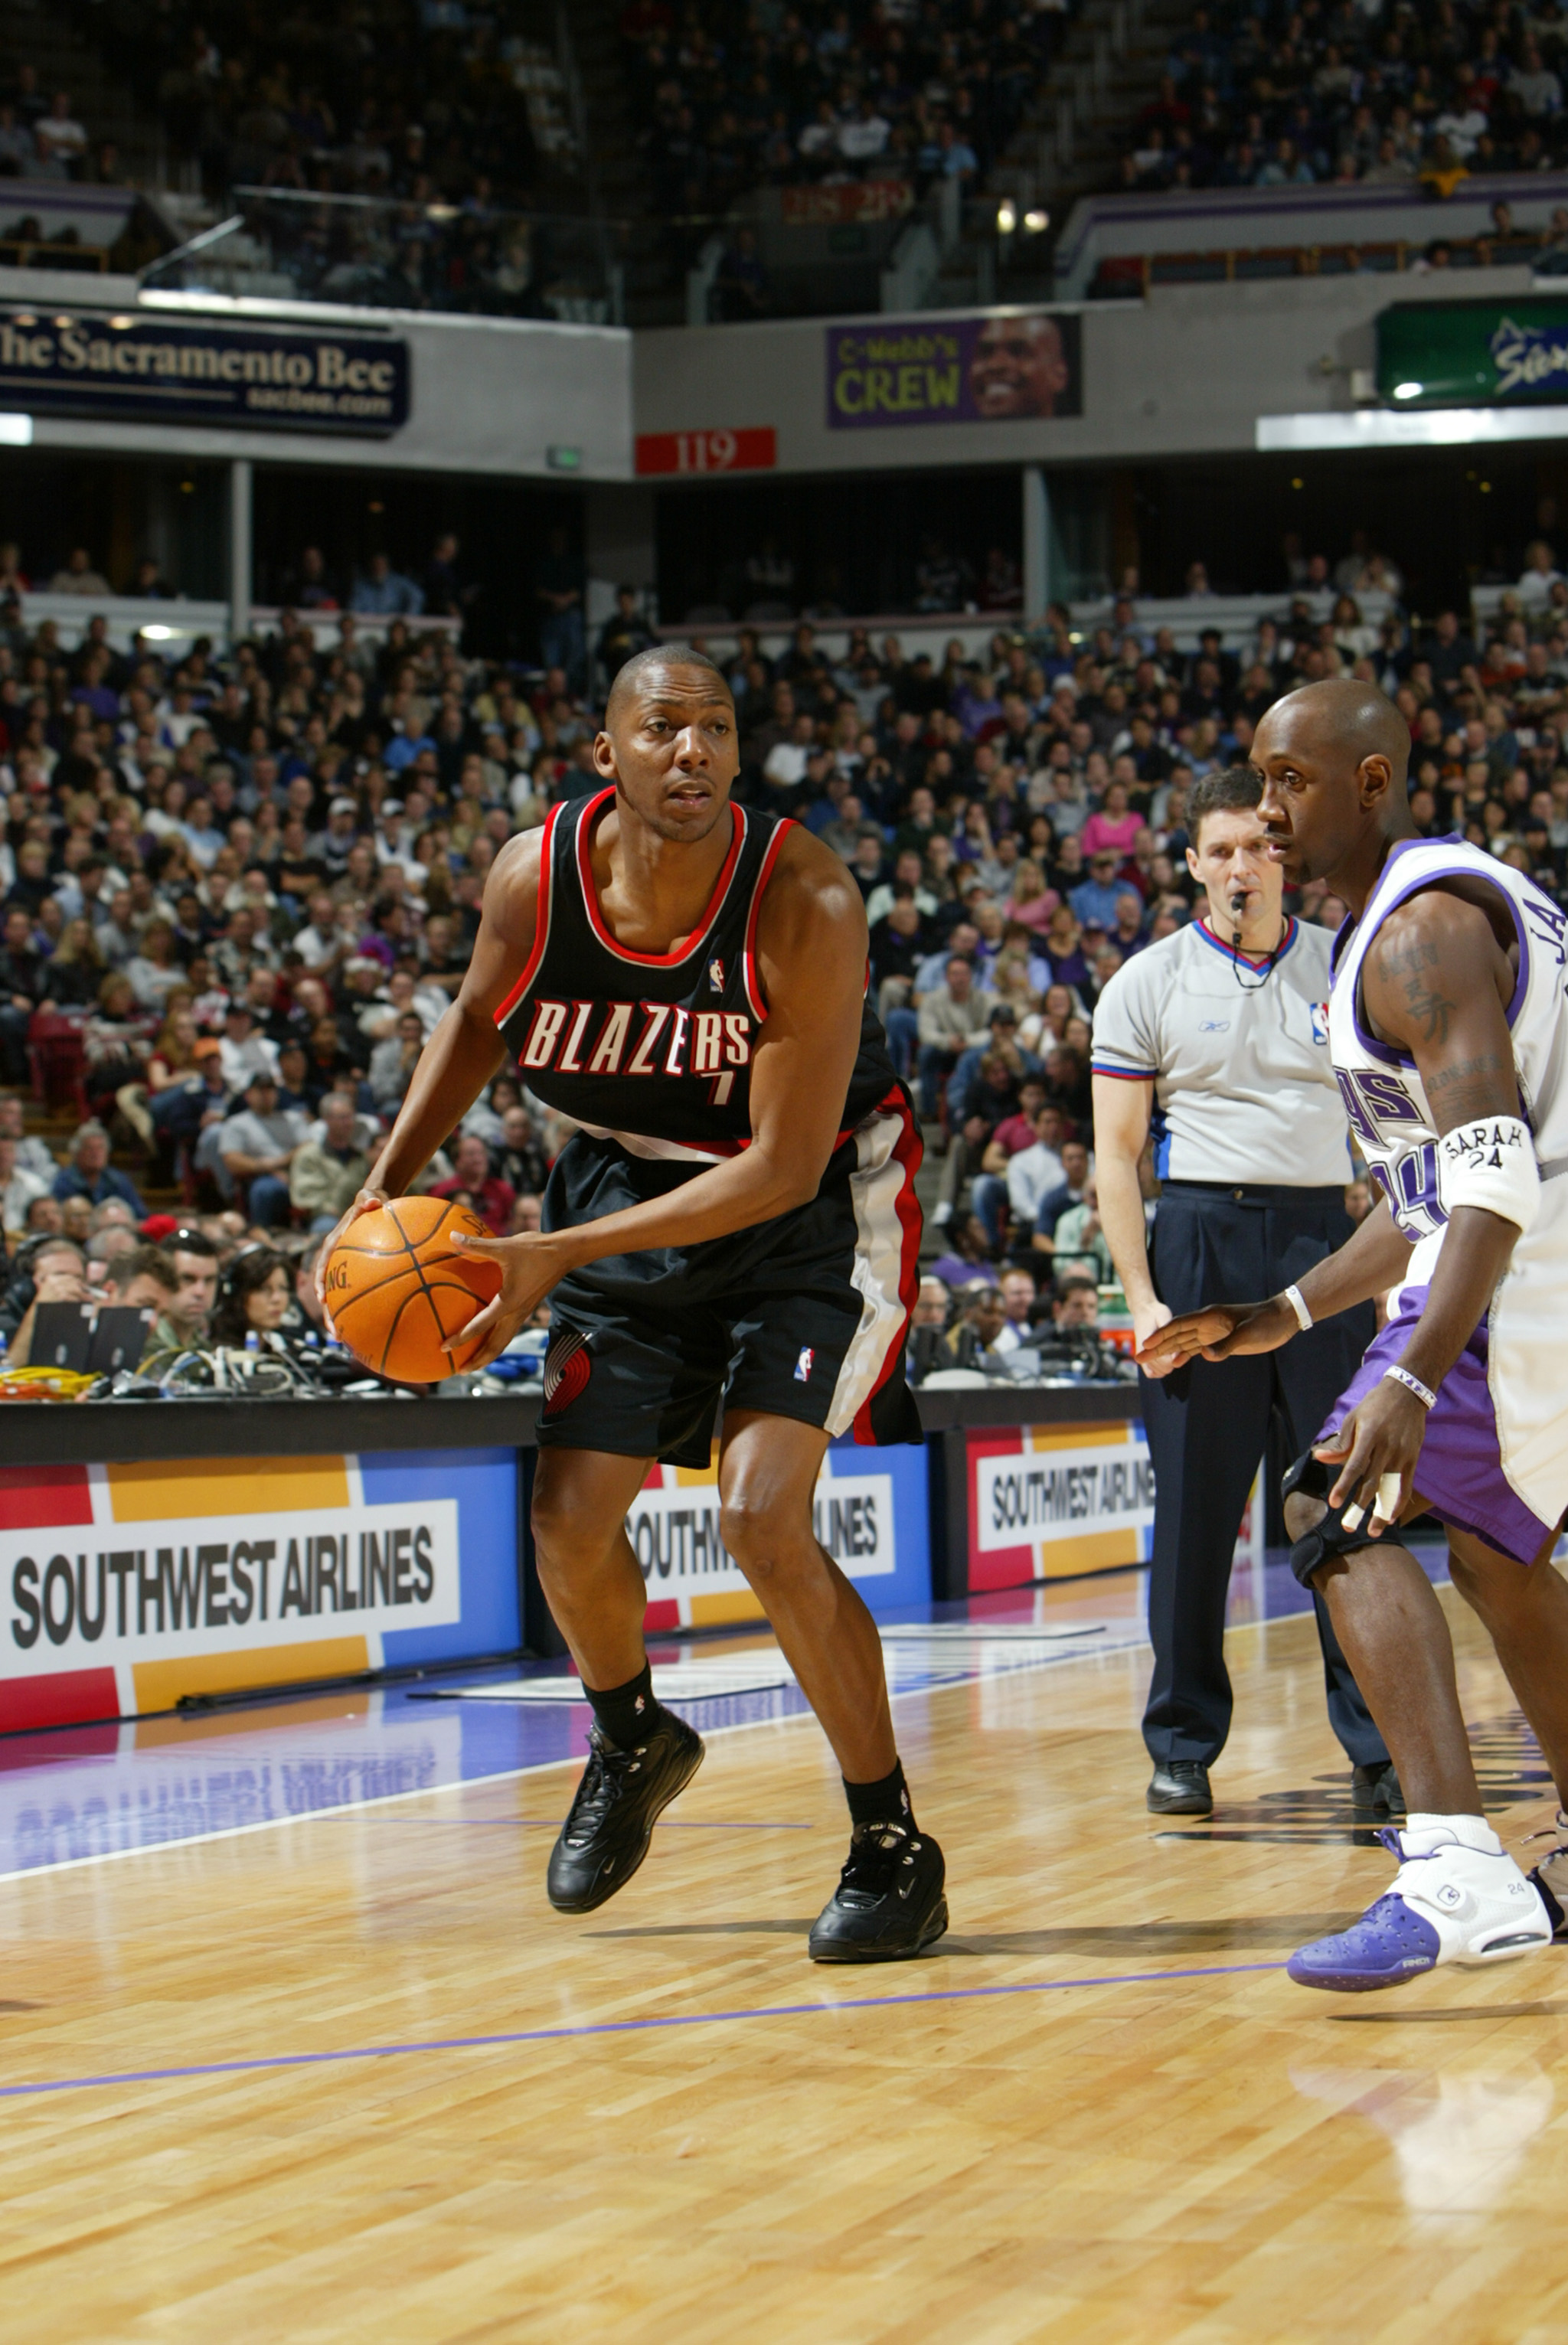 SACRAMENTO, CA - DECEMBER 21:  Wesley Person #7 of the Portland Trail Blazers is defended by Bobby Jackson #24 of the Sacramento Kings during the game at Arco Arena on December 21, 2003 in Sacramento, California.  The Kings won 117-98.   NOTE TO USER: Use